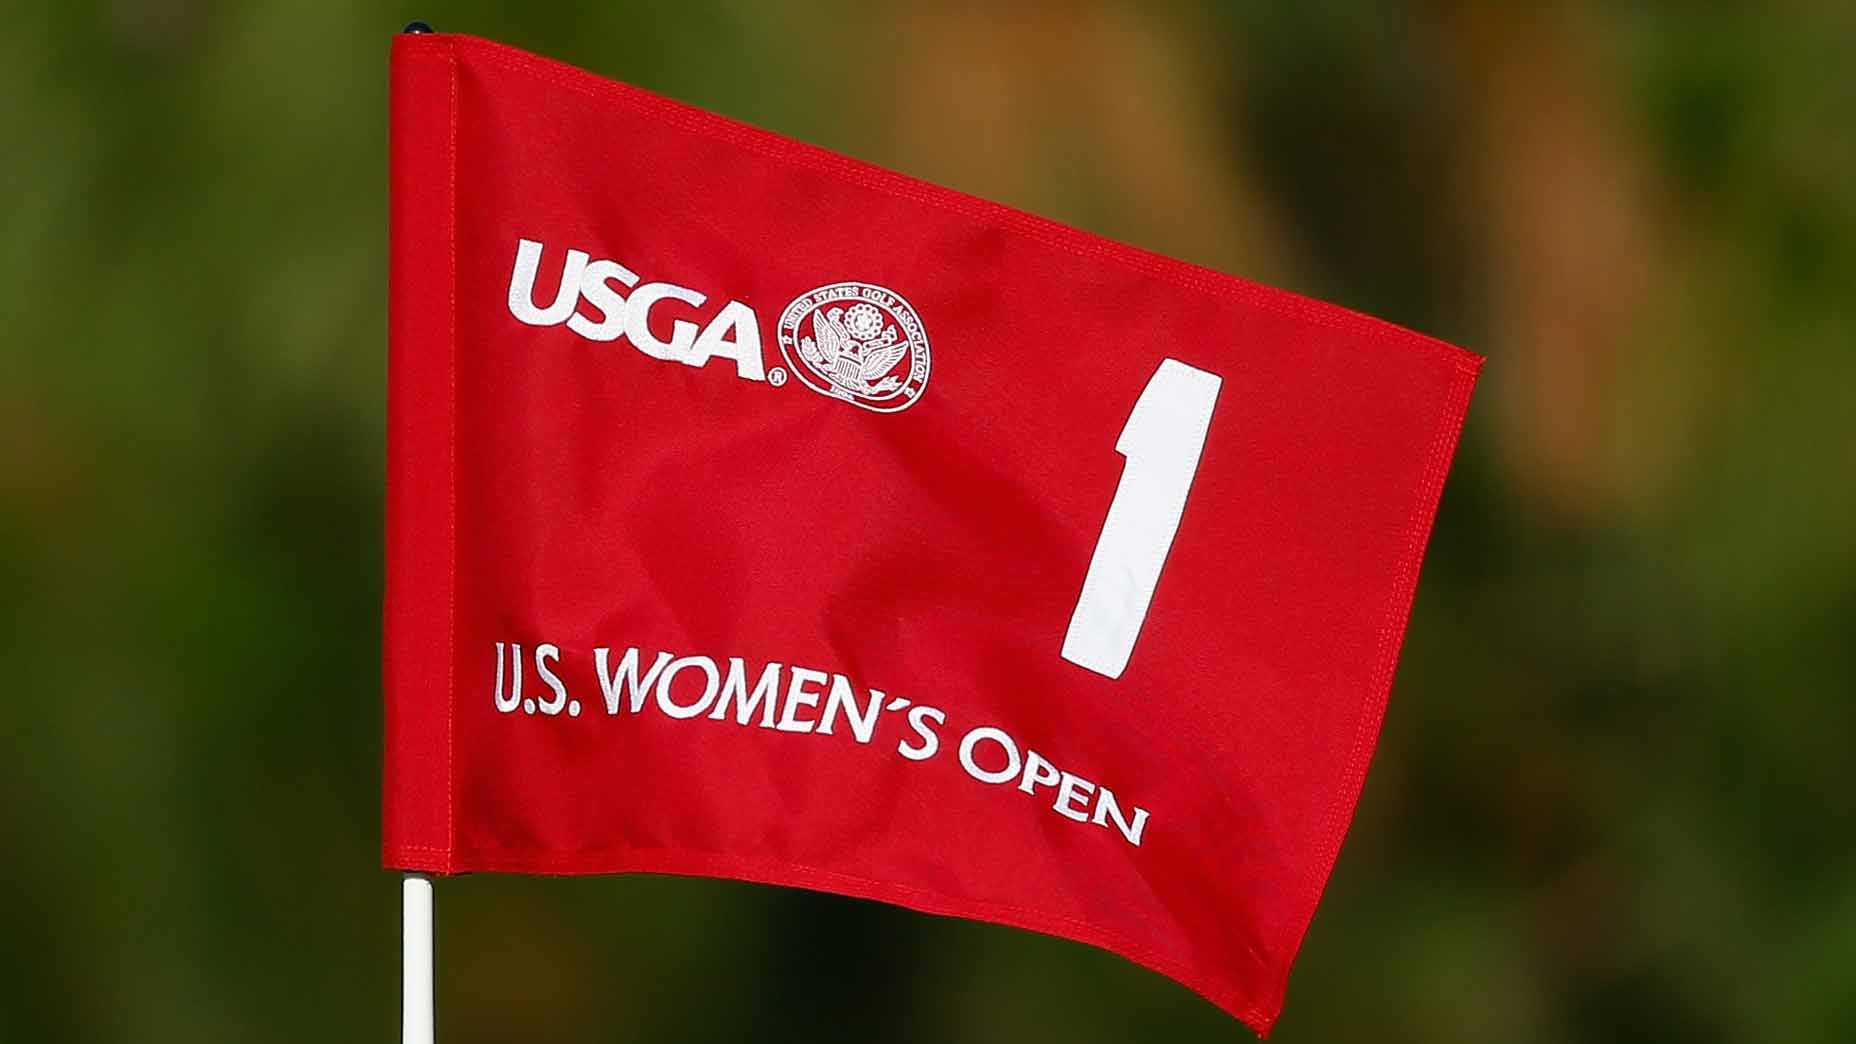 US Women's Open flag